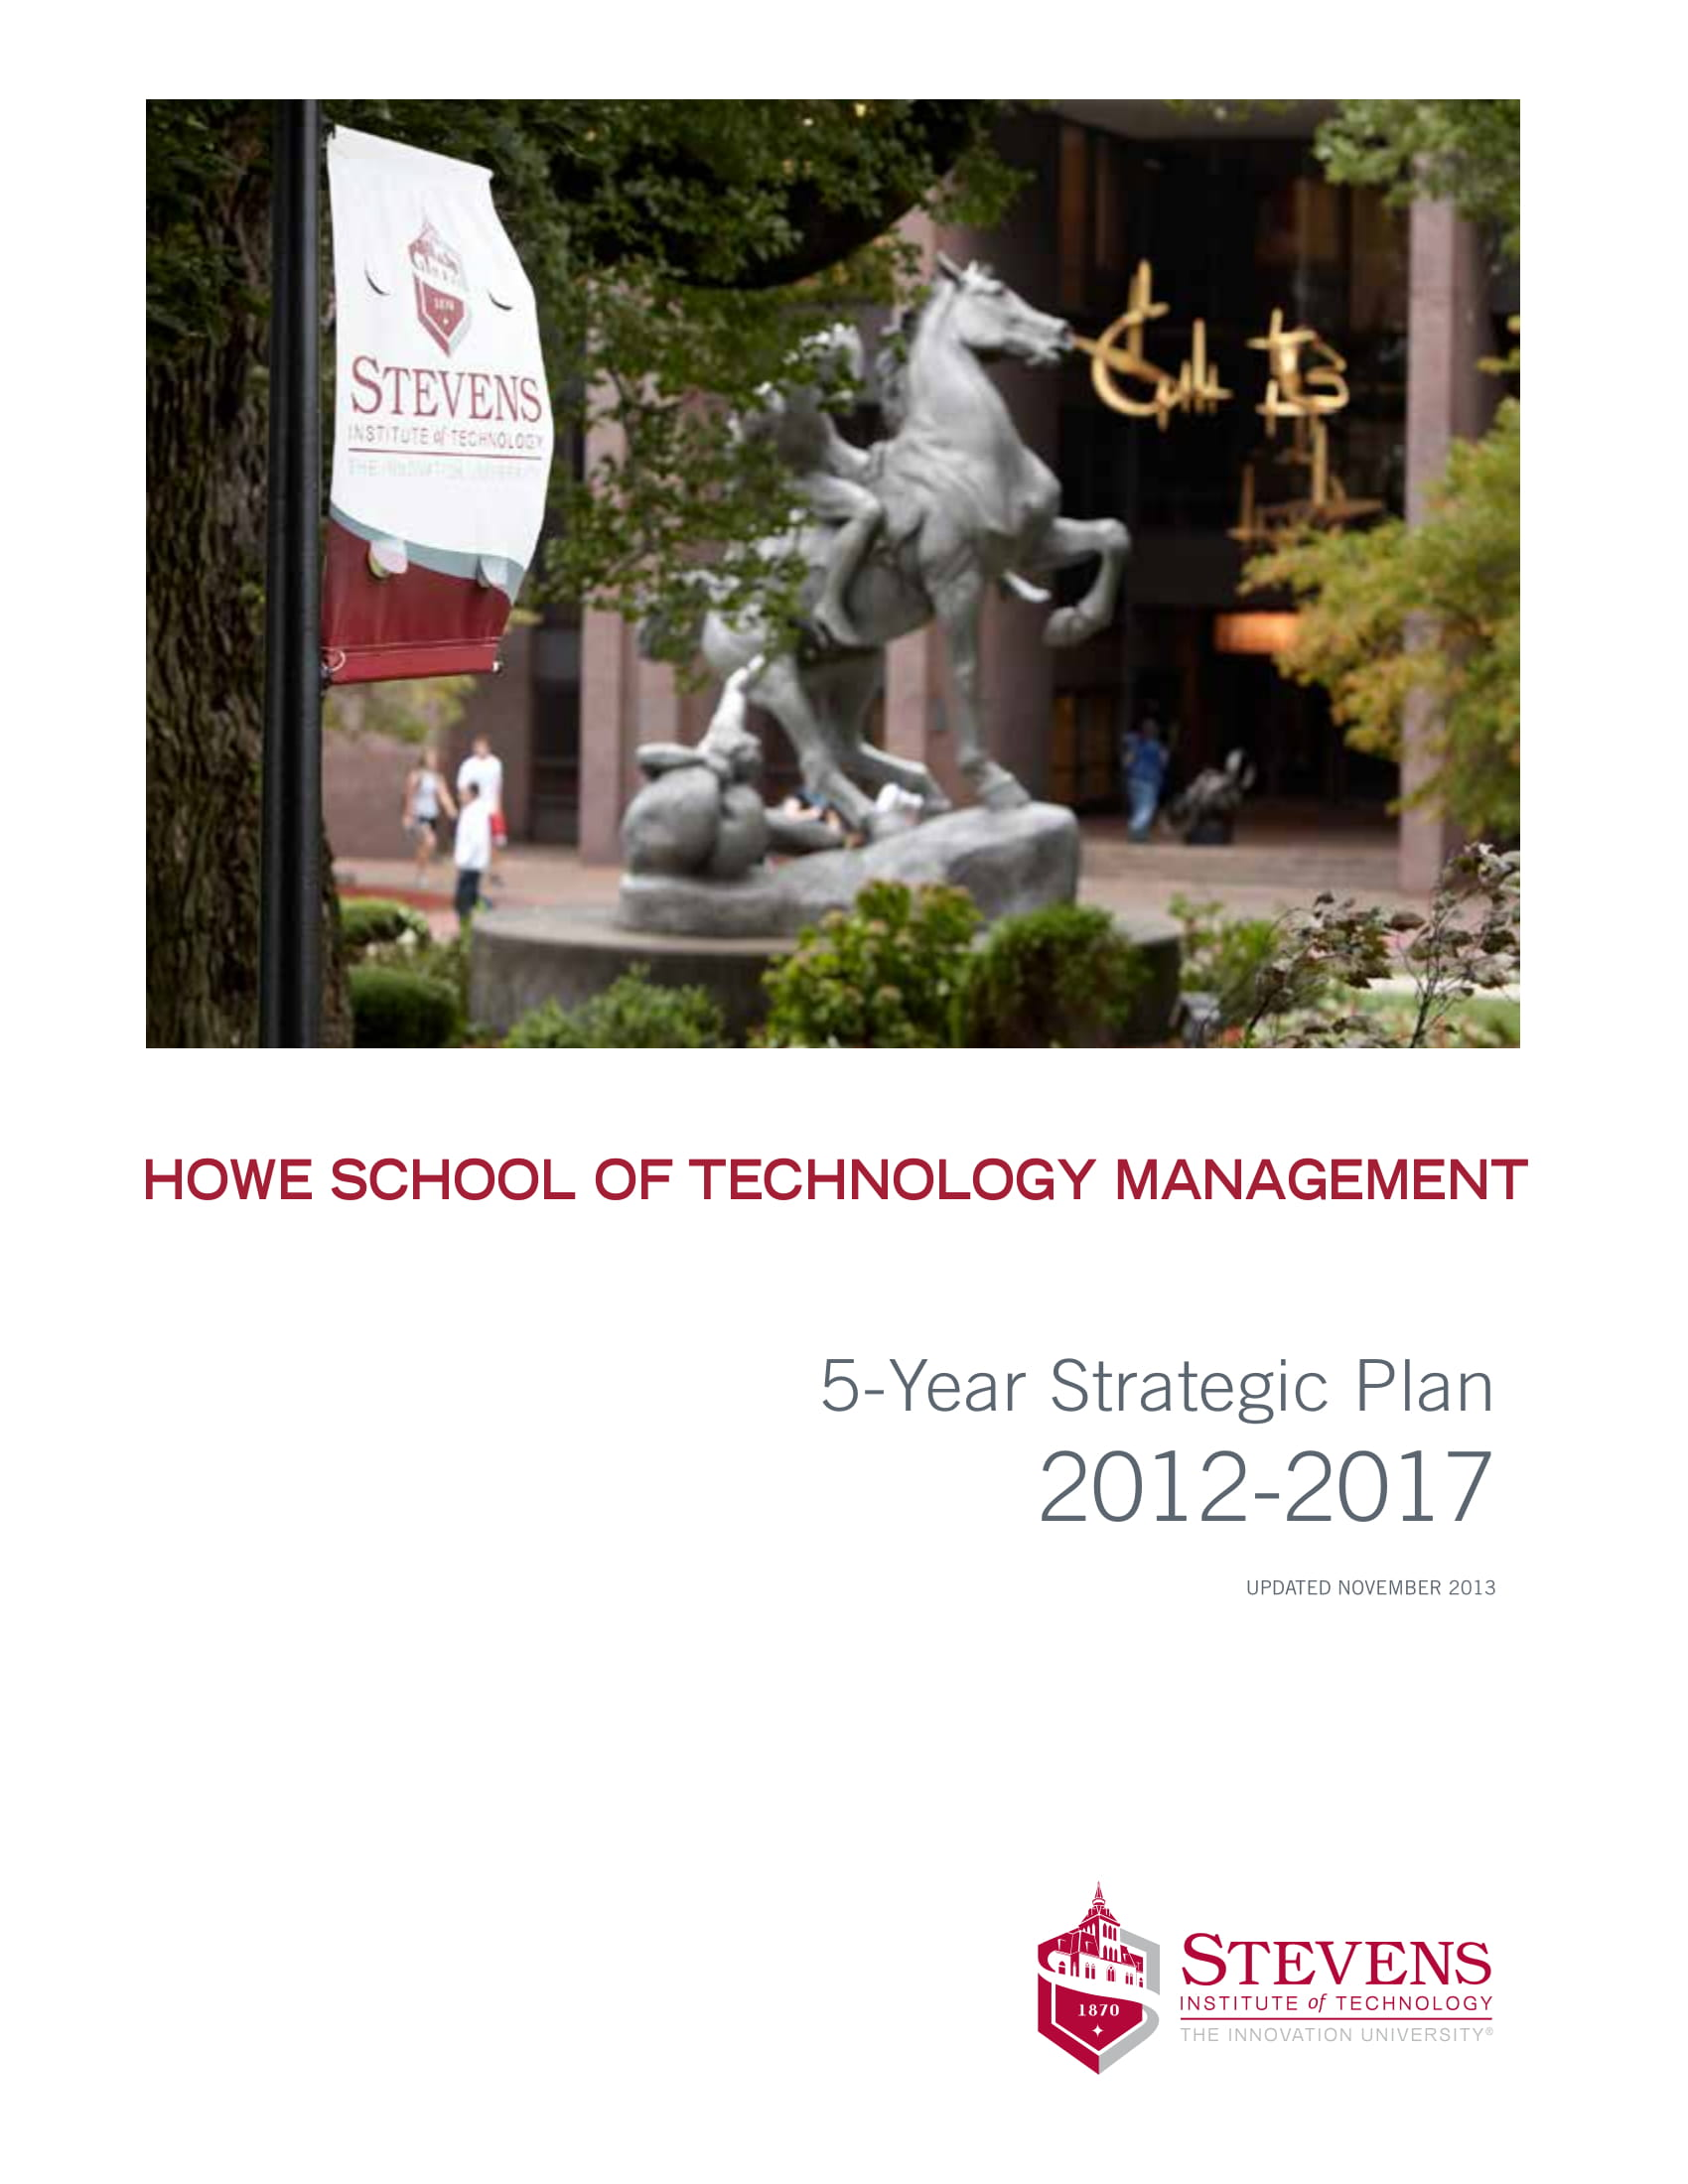 school of technology management 5 year strategic plan example 01